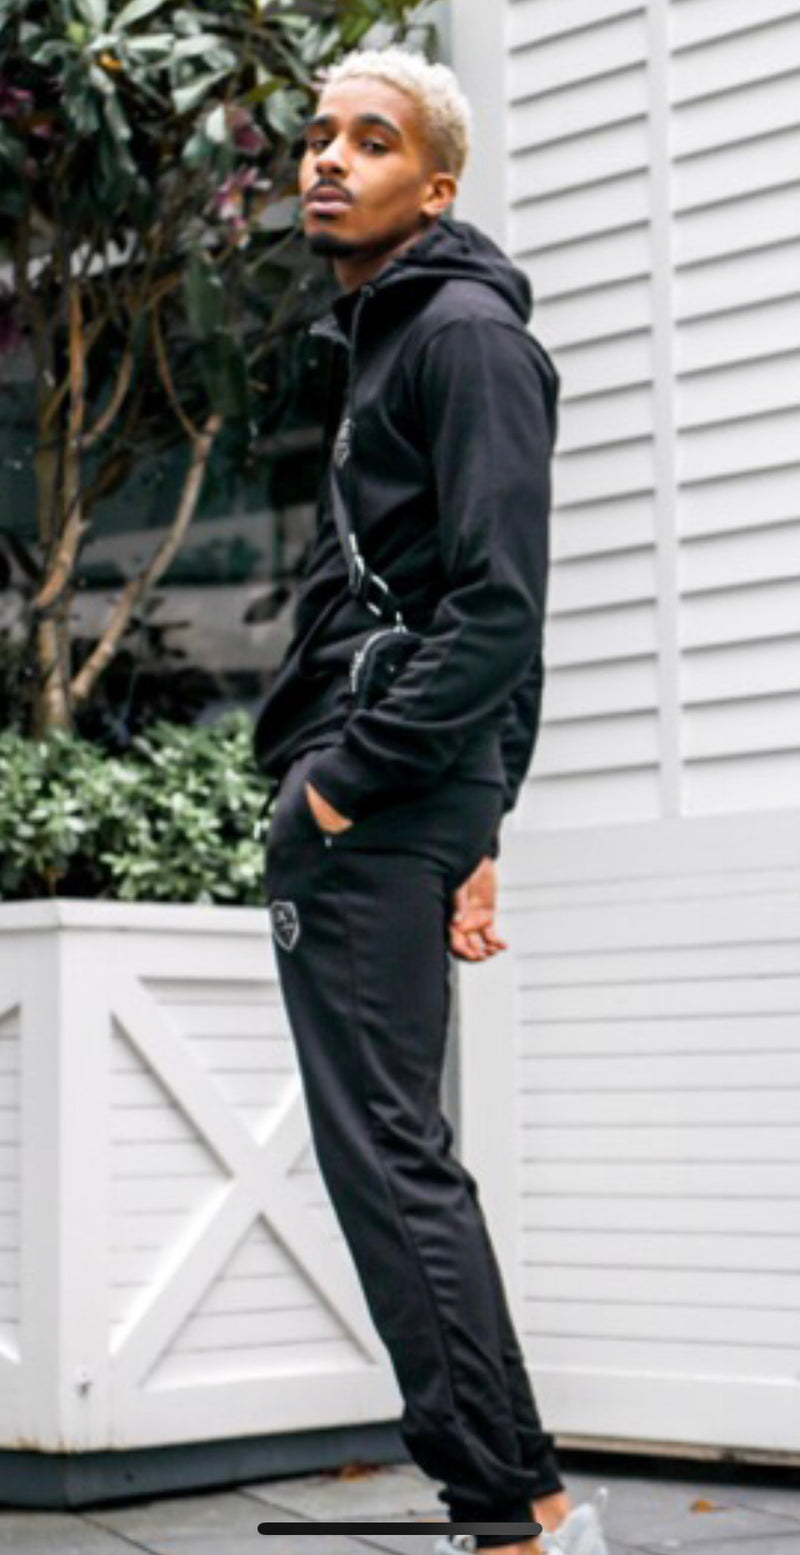 New Mens Designer Style Slim Black Tracksuit Fit hx1jeans Reflective Logos